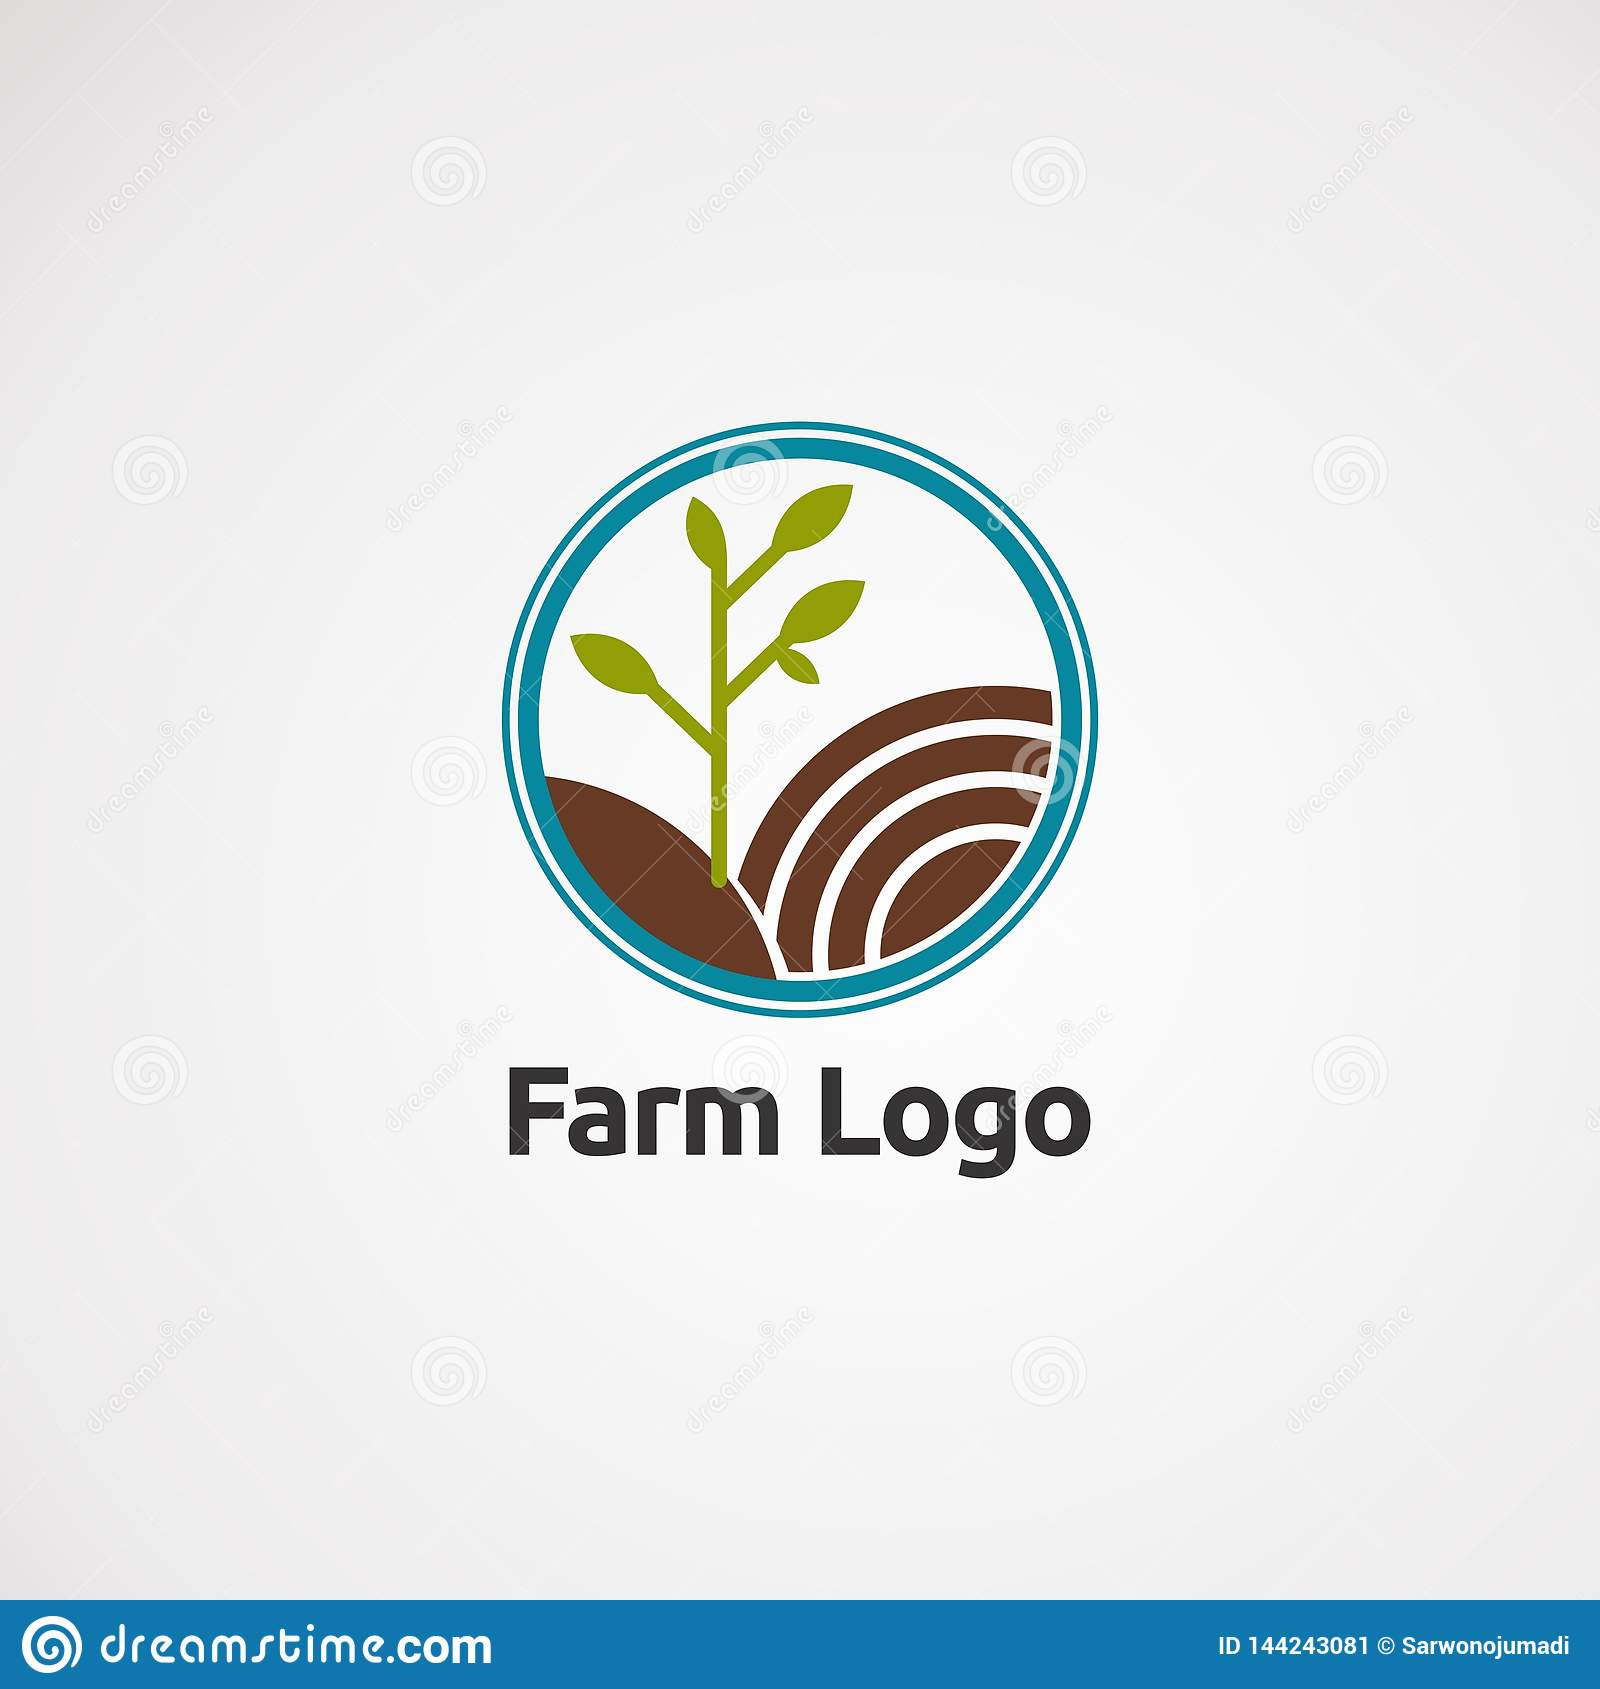 Star cloth logo vector, icon, element, and template for company